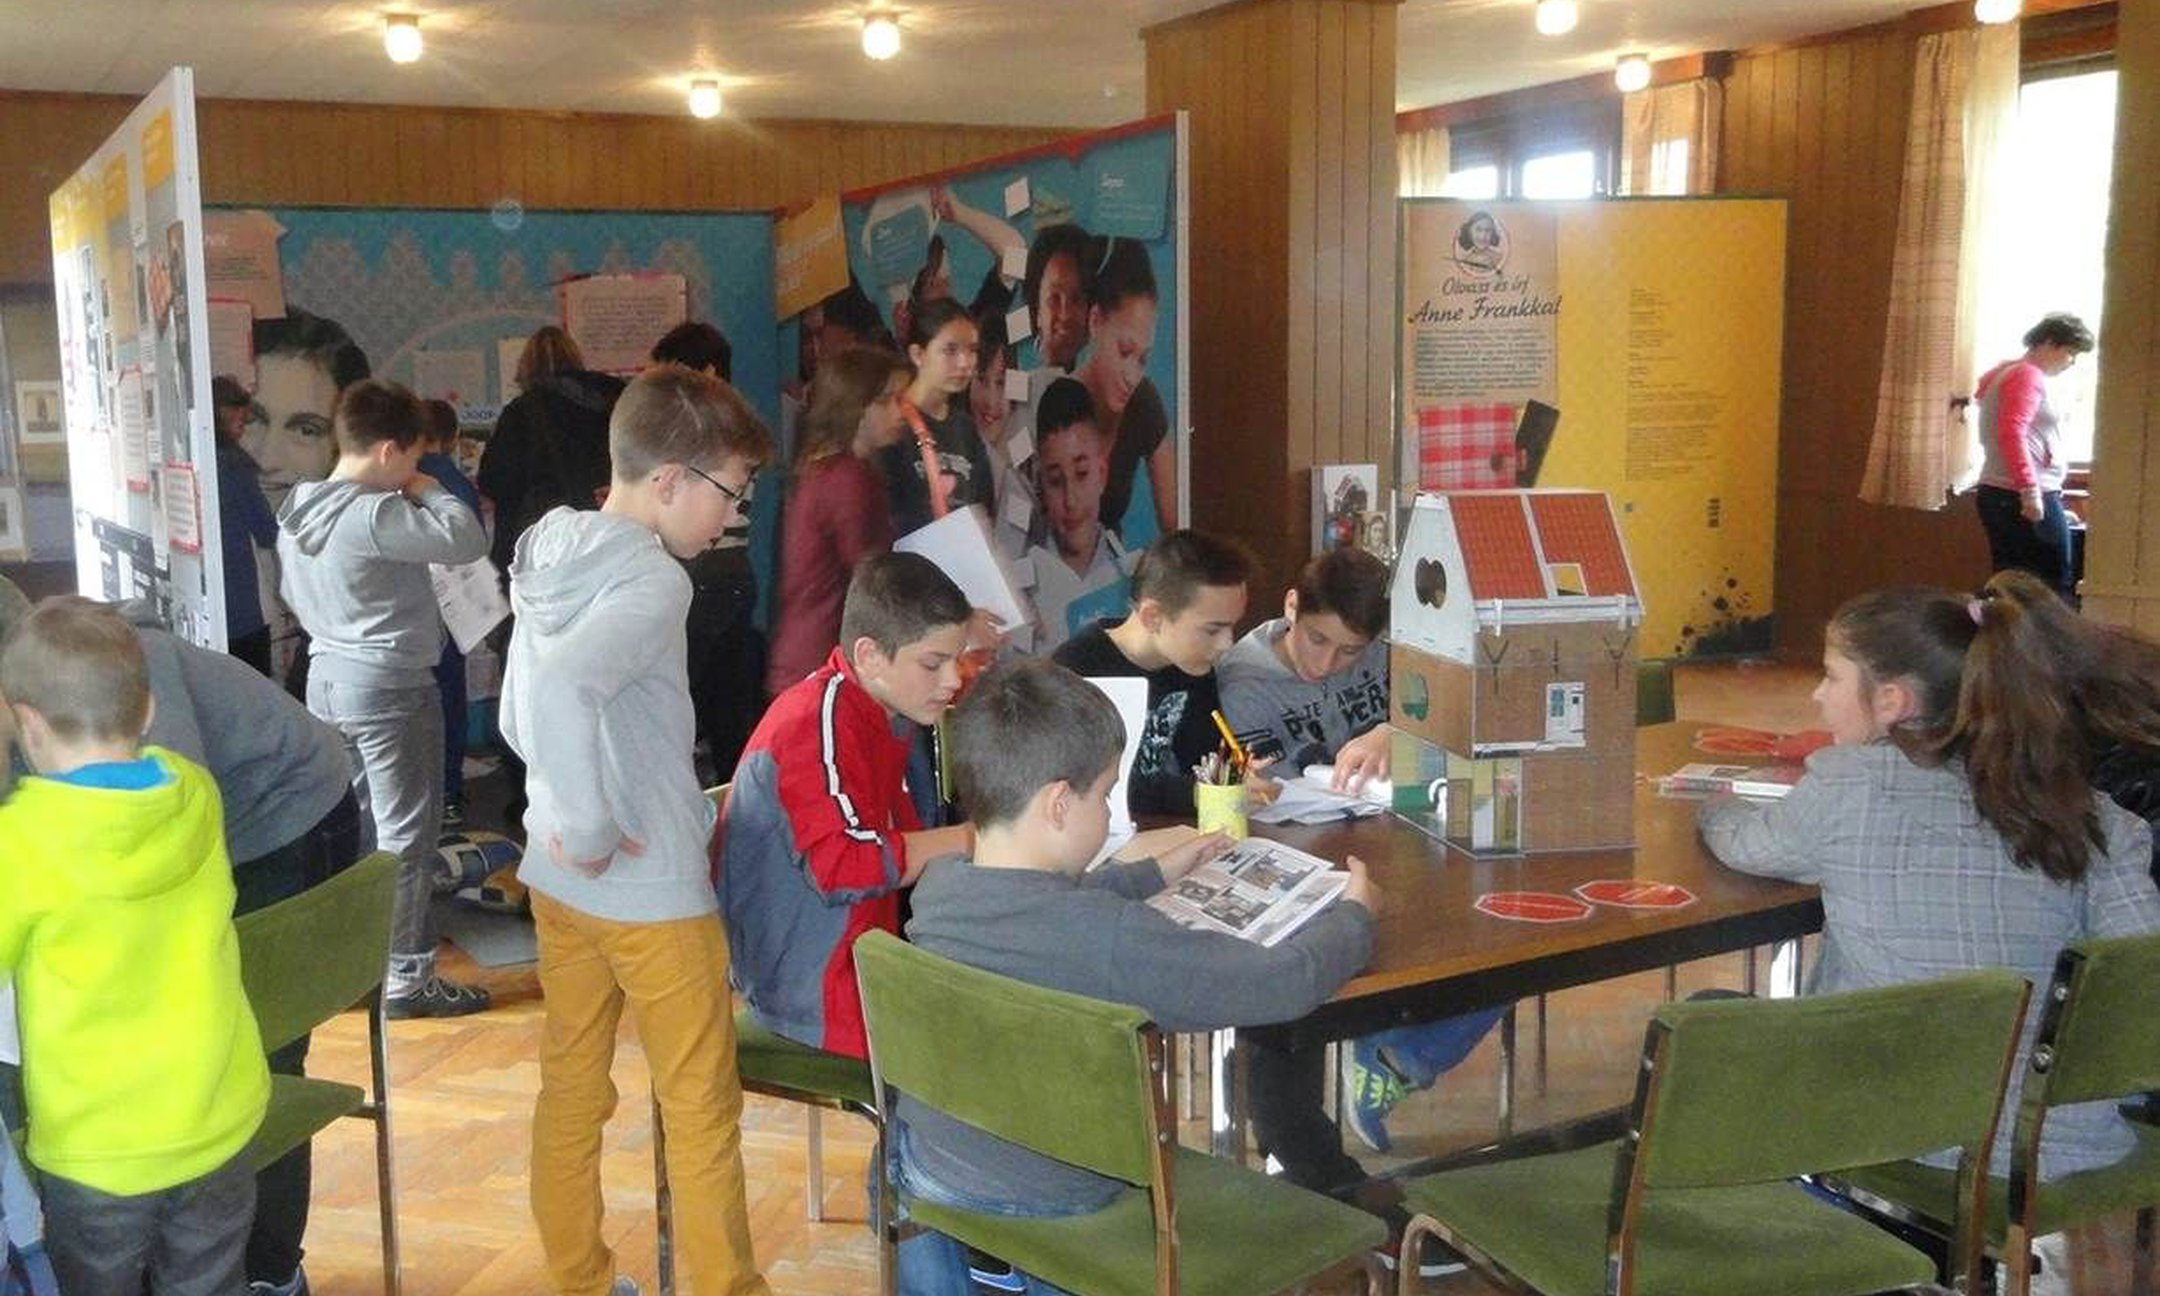 Workshop on the Reading and Writing with Anne Frank travelling exhibition in Székesfehérvár (2015)